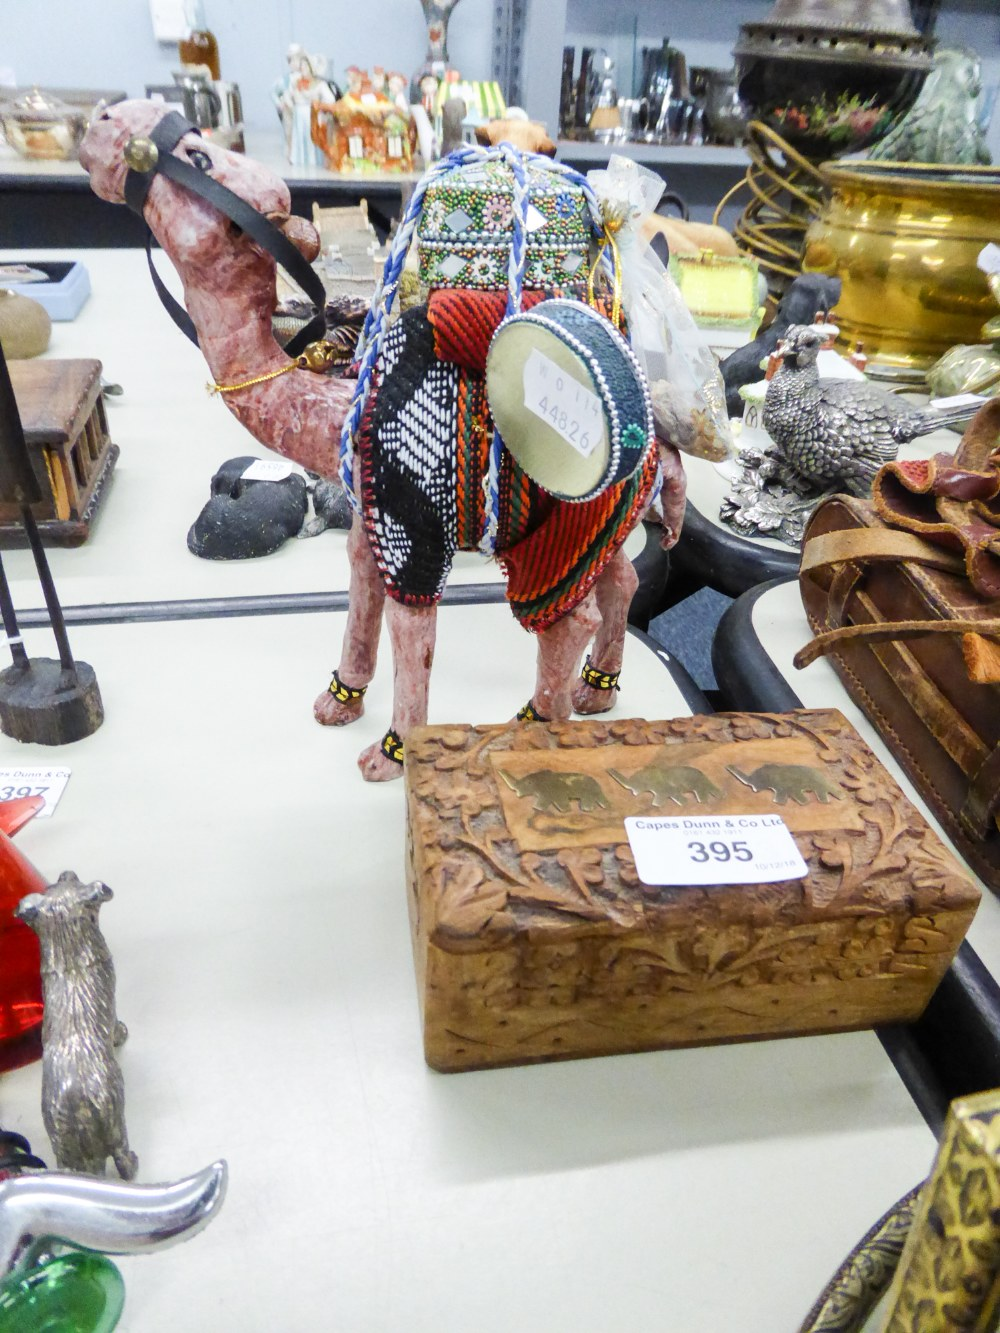 Lot 395 - CARVED WOOD SOUVENIR MODEL OF A CAMEL; FLORAL CARVED TEAKWOOD TABLE CIGARETTE BOX, INLAID WITH BRASS